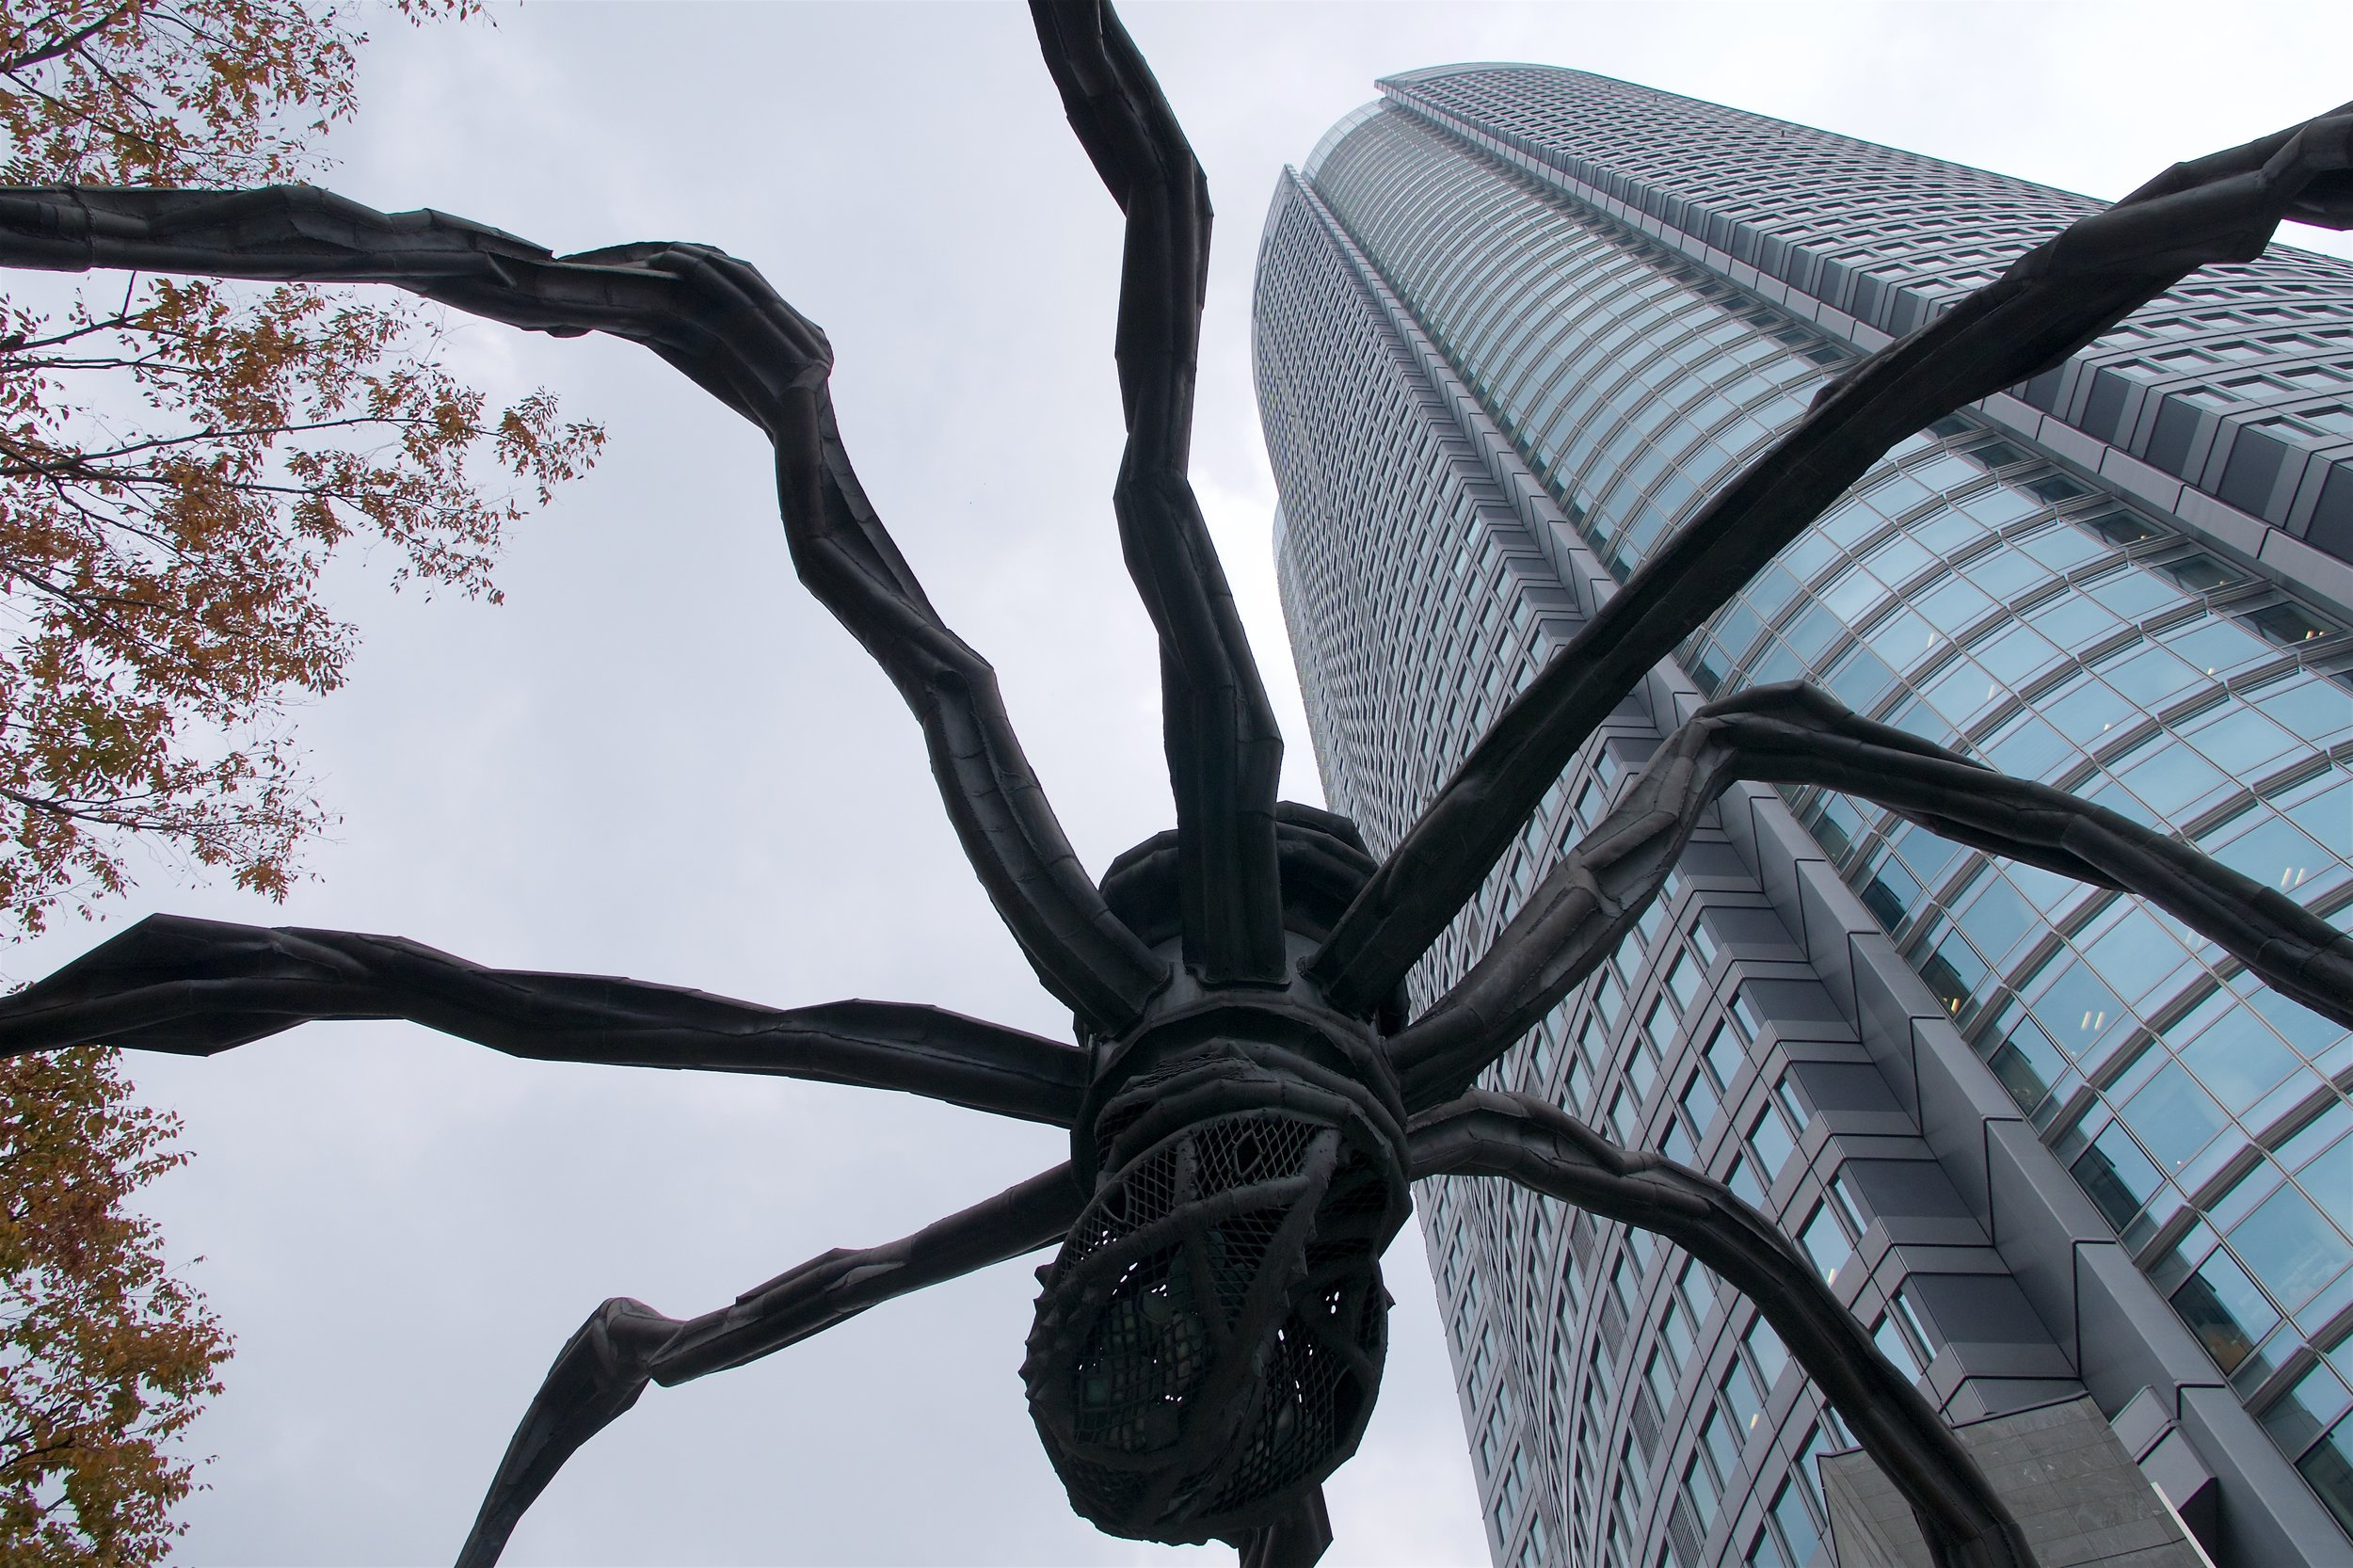 This spider sculpture, Maman, covers a big section of the Roppongi HIlls plaza